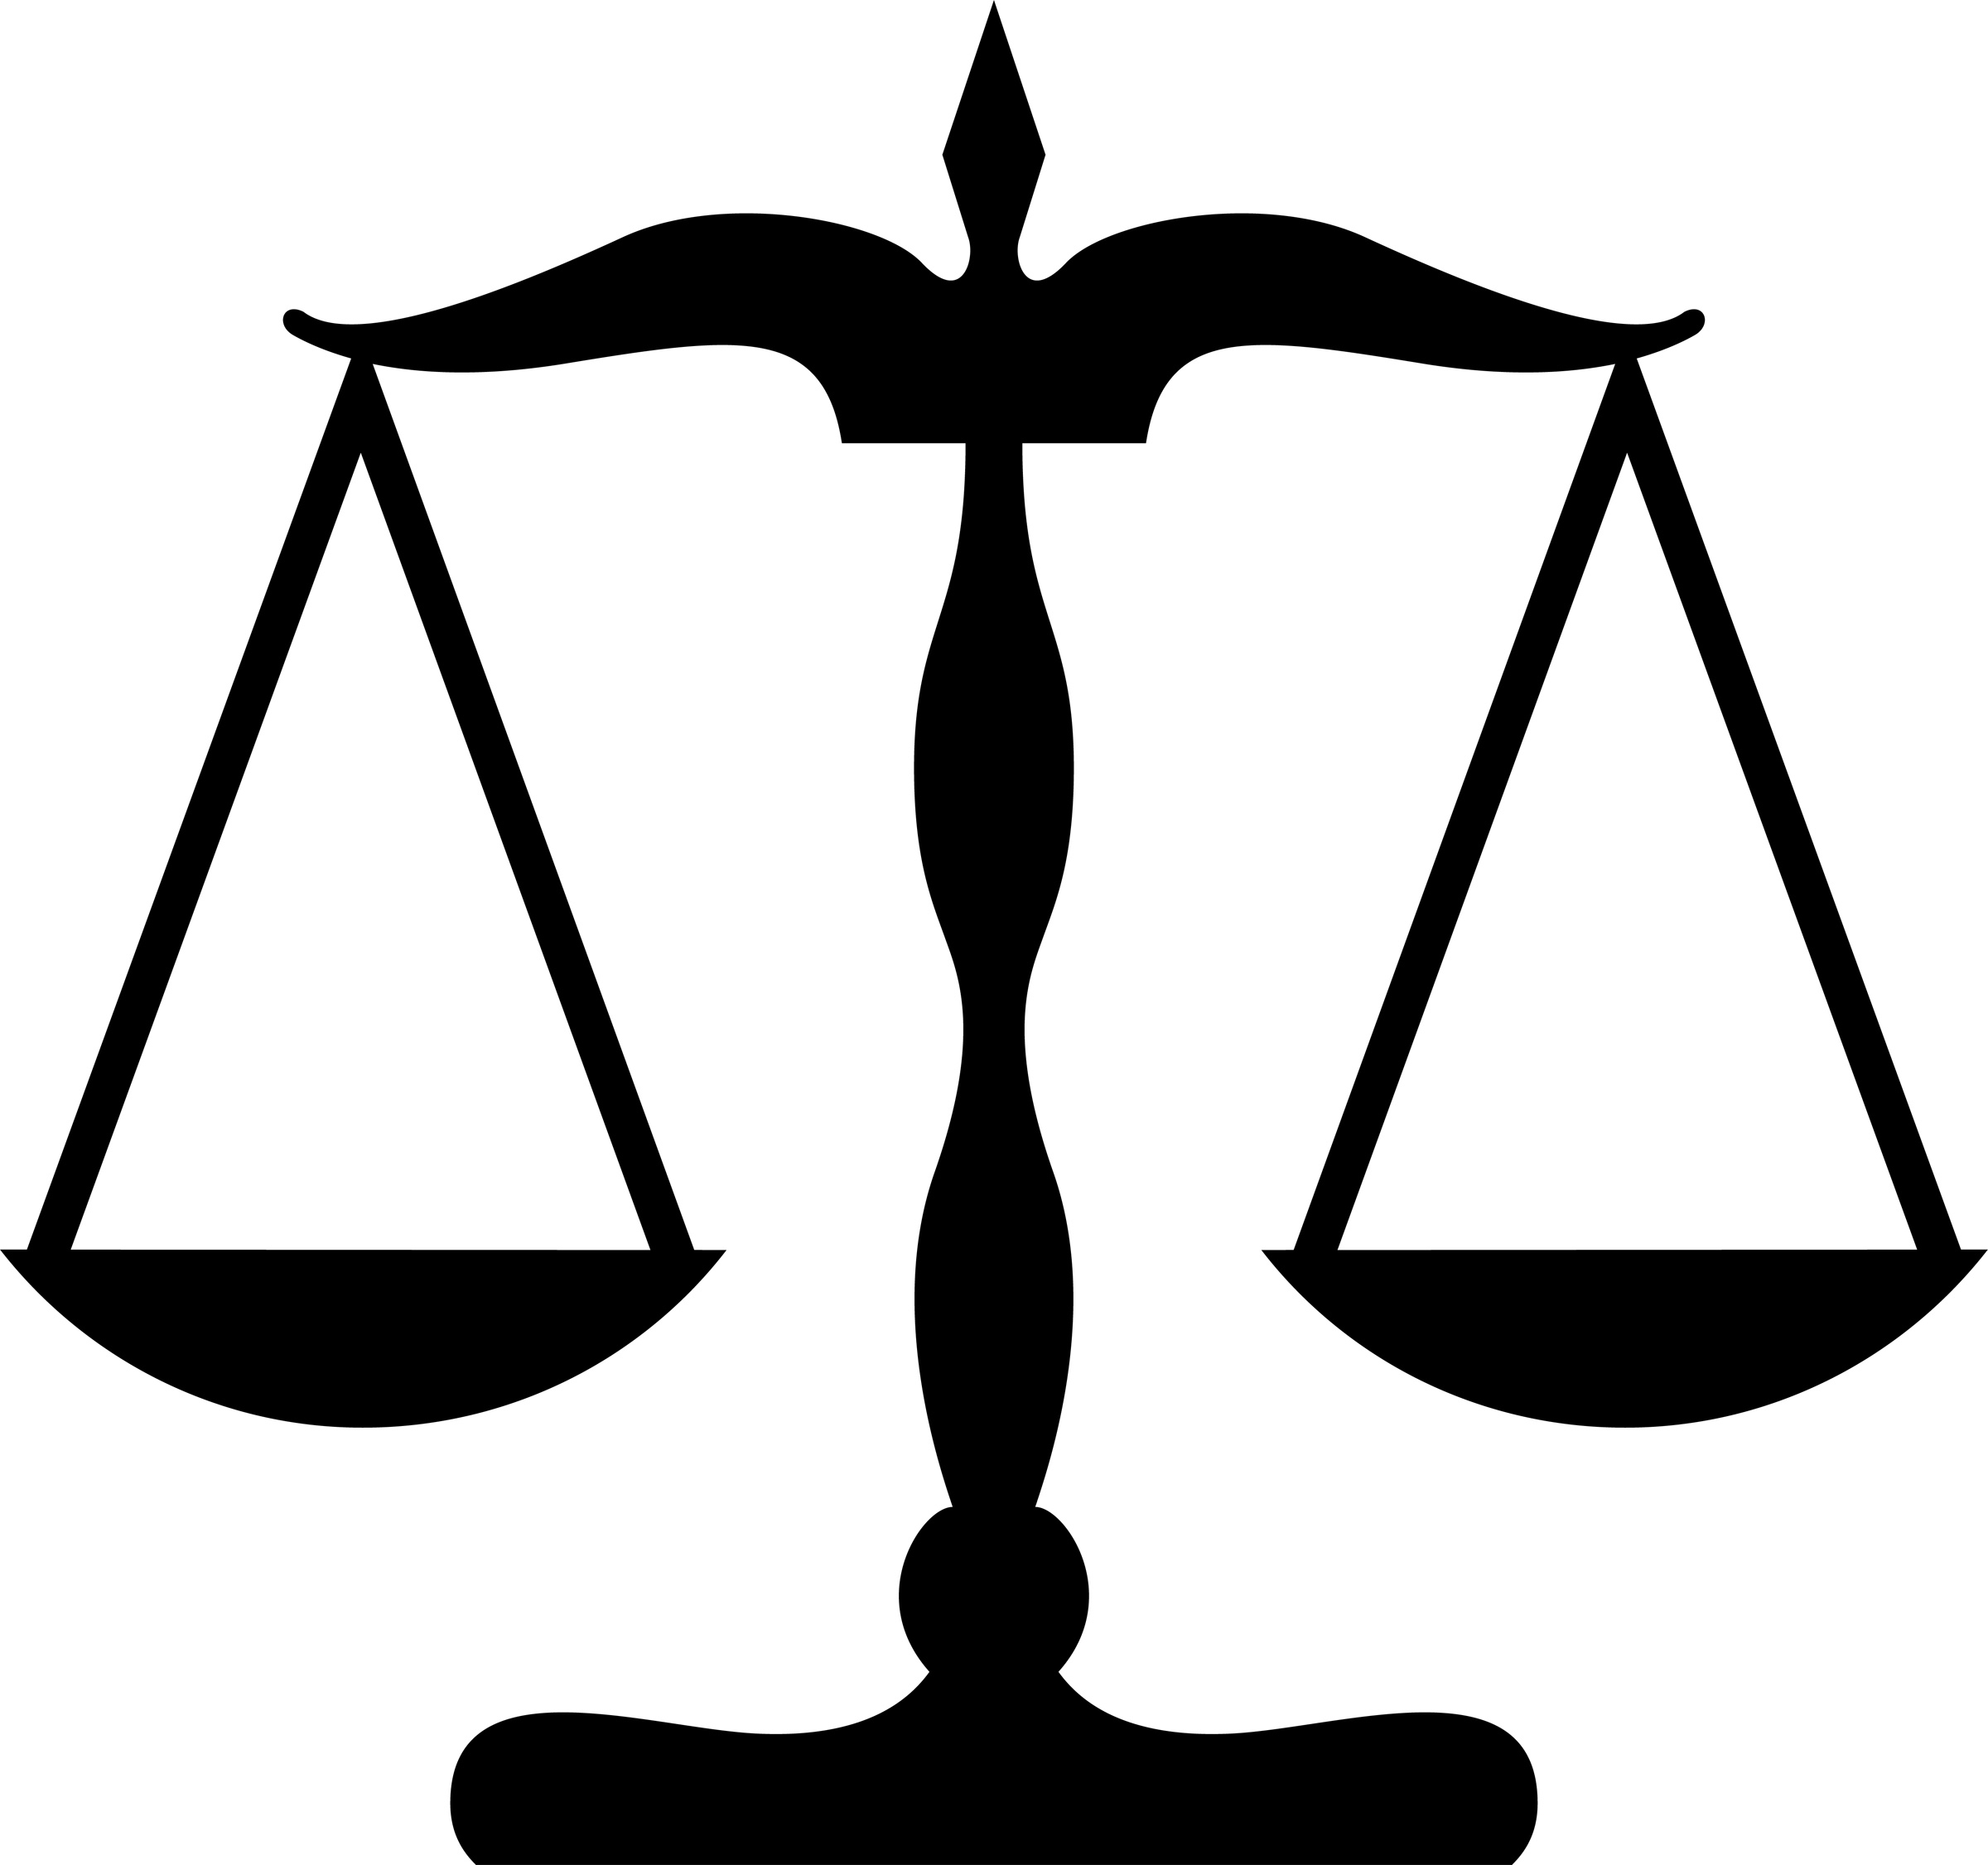 19 Symbol Of Court Of Justice In India Justice India Court Of Of